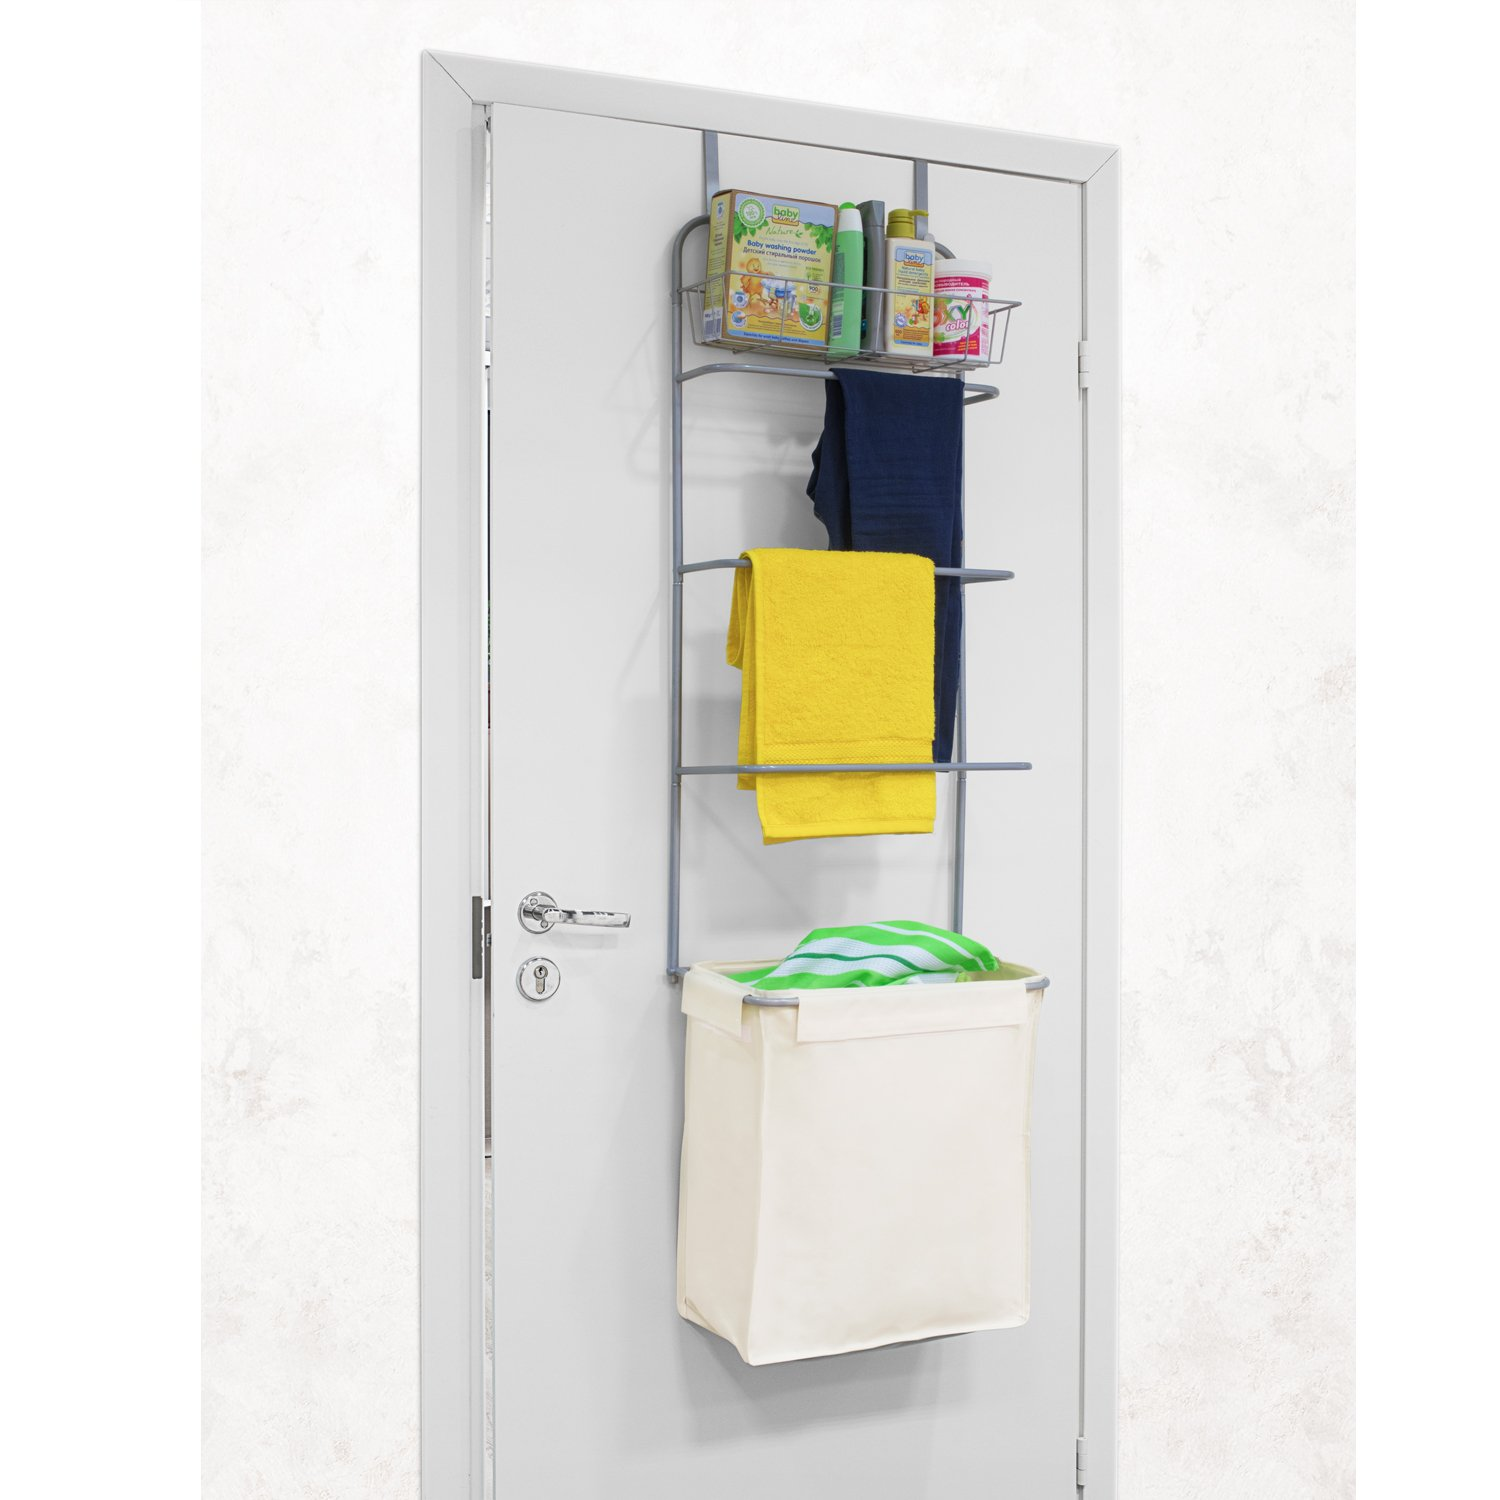 Tatkraft Solver Over Door Laundry Rack Space Saver with Shelf, Laundry Hamper and 3 Towel Rails 16.5 X 58.7 X 11.2